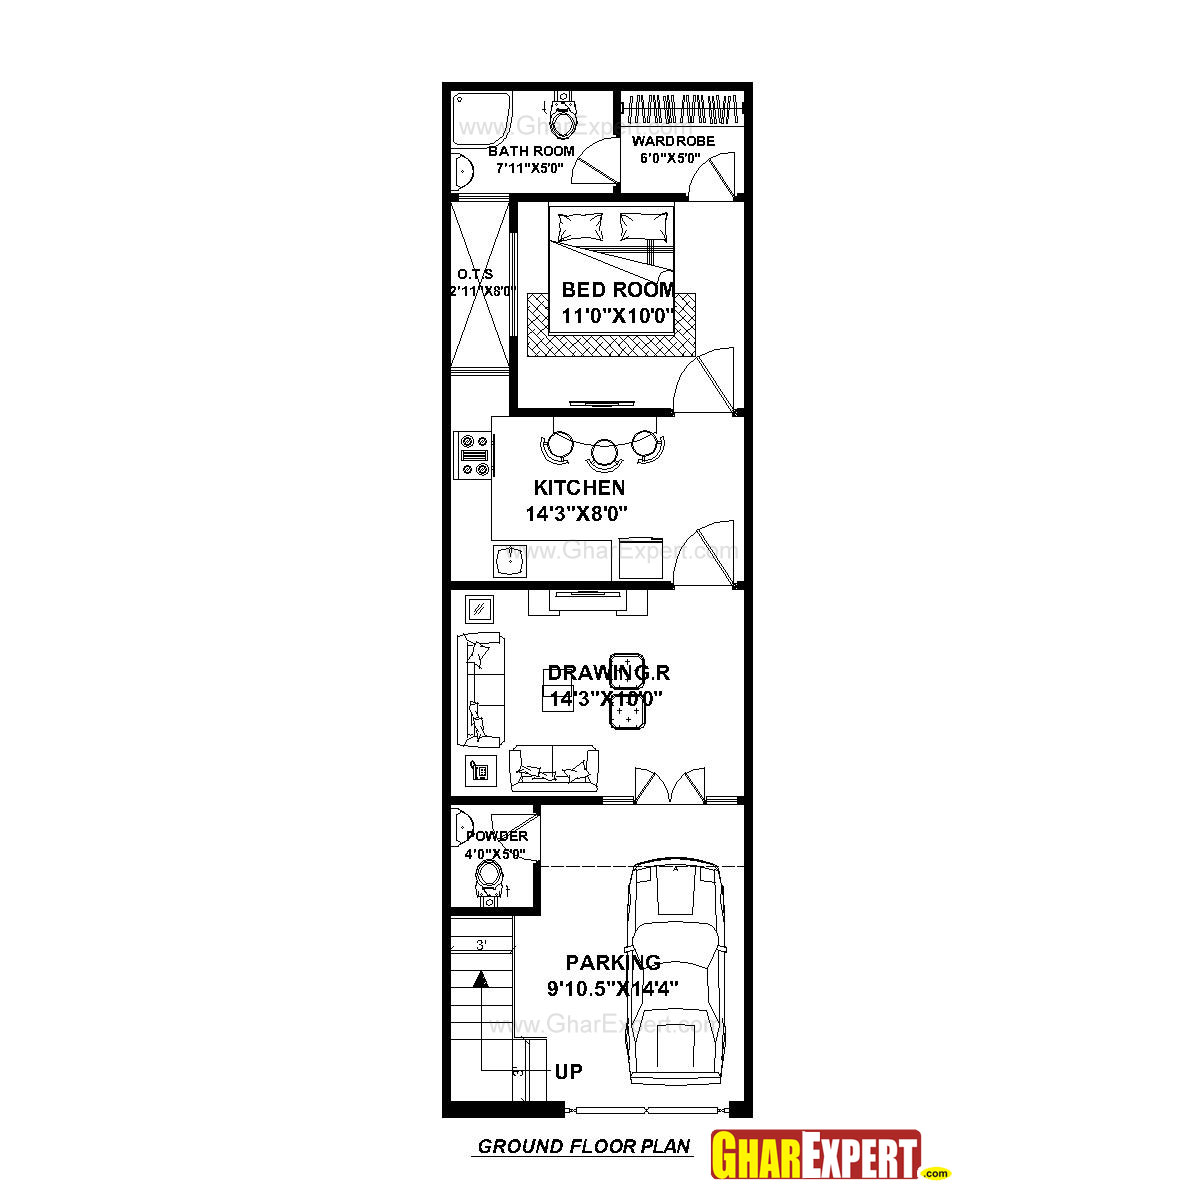 House Sparrow Bird Box Plans likewise 8269 besides Stock Images Standard Symbols Used Architecture Plans Icons Set Vector Illustration Image35317444 as well Floor Plans furthermore 1500 Square Feet 3 Bedrooms 2 5 Bathroom Craftsman Home Plans 2 Garage 13947. on long house floor plans